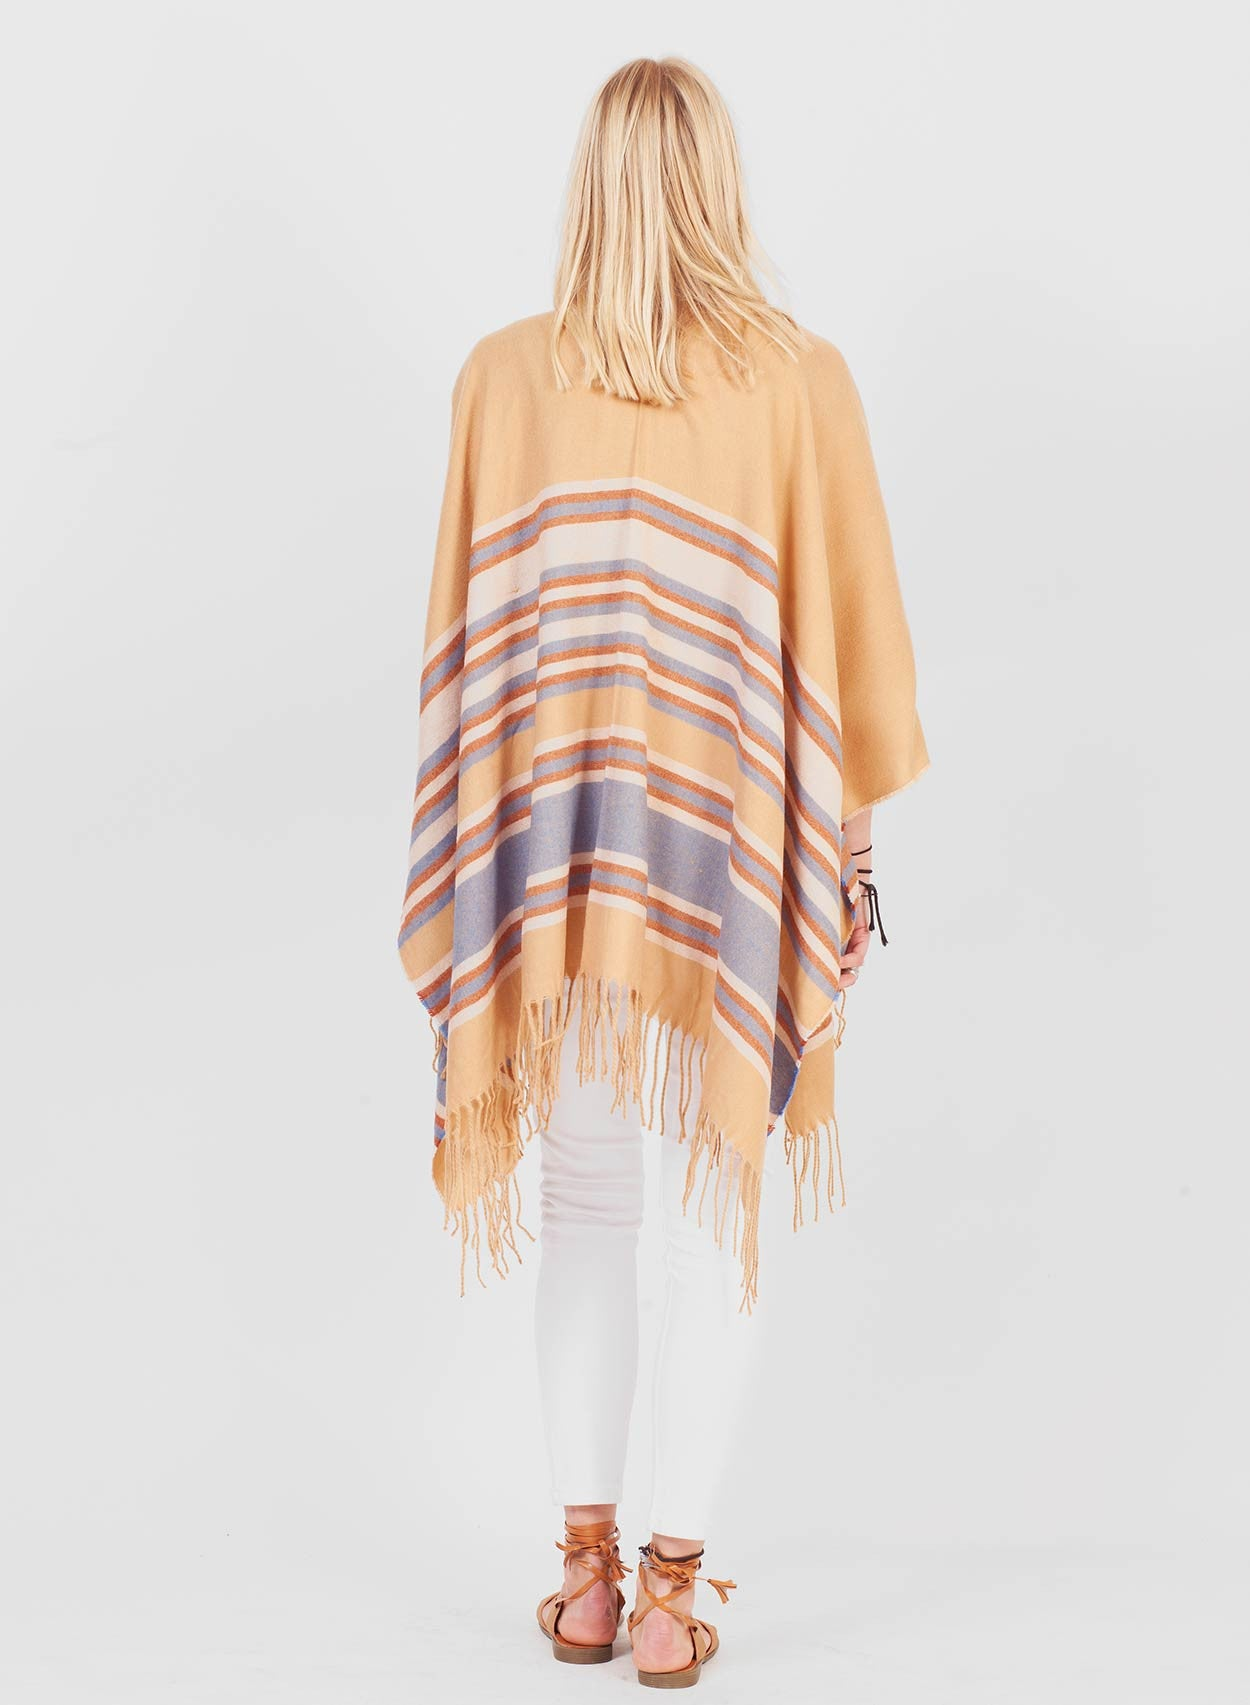 Super Soft Camel Blanket Cape - LoveClothing.com - 3